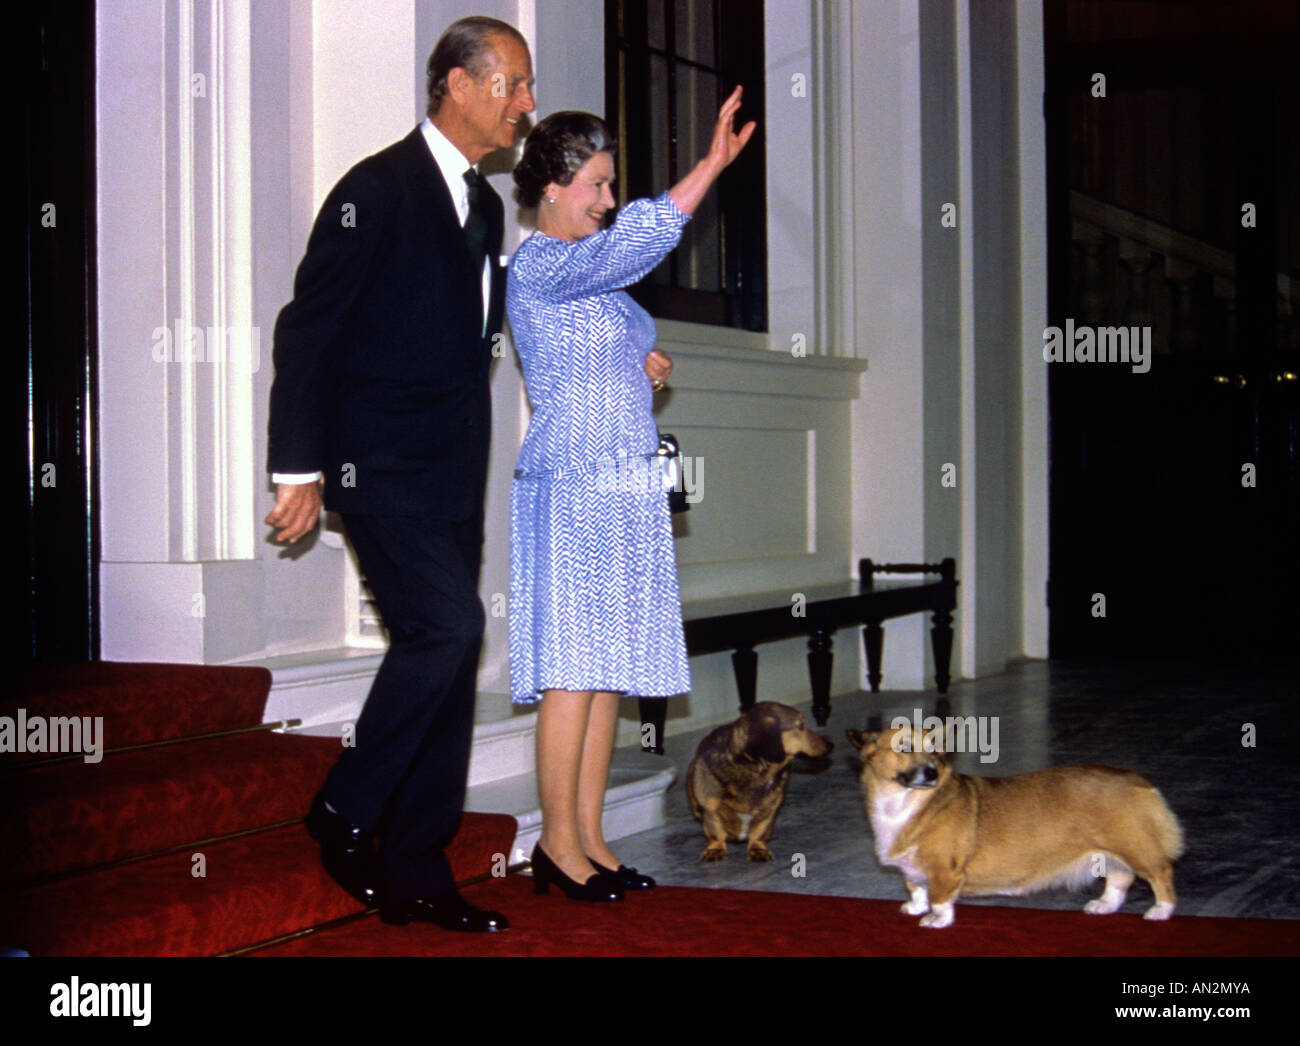 queen-elizabeth-and-prince-philip-with-corgi-dogs-at-buckingham-palace-AN2MYA.jpg